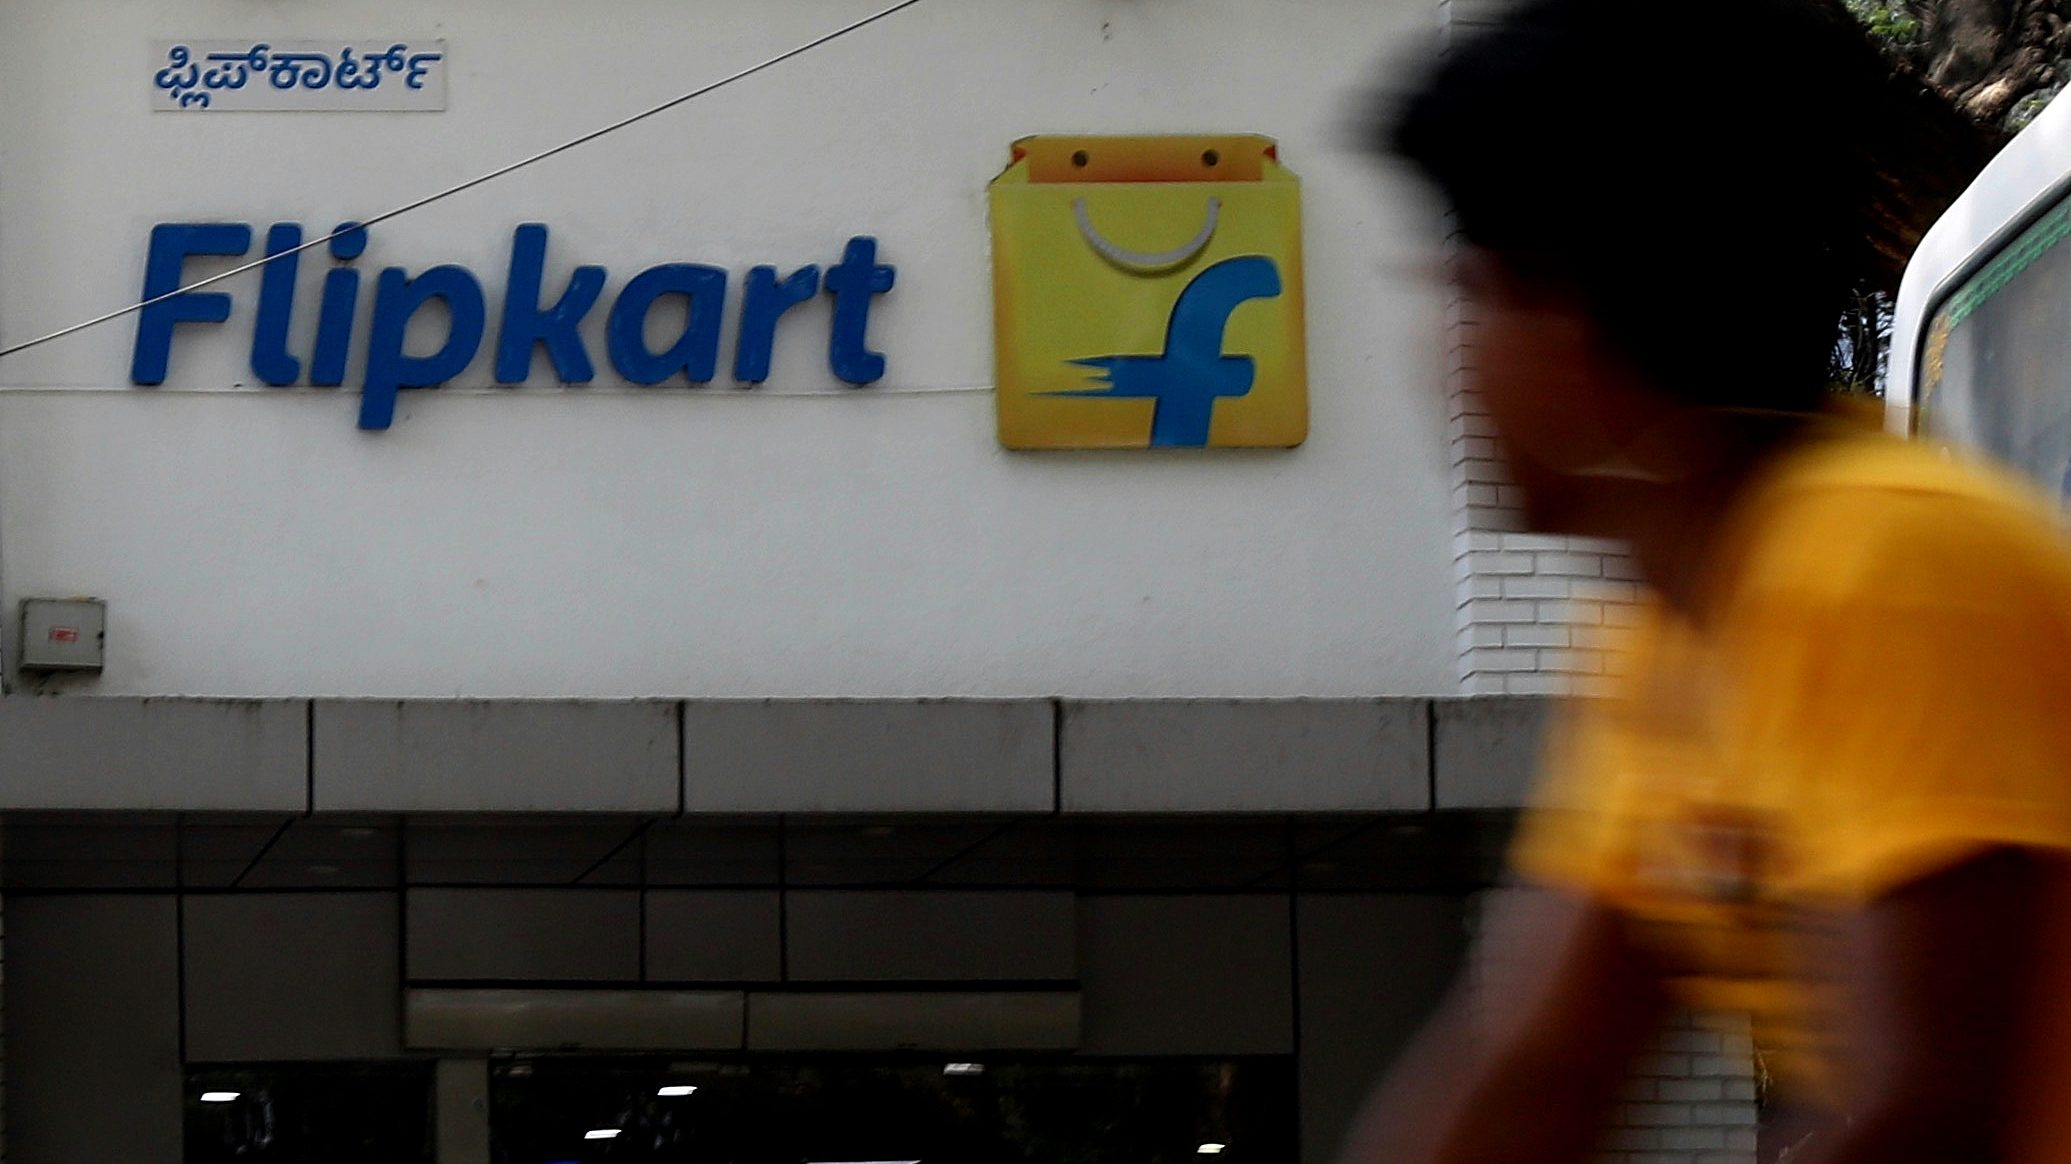 epa06536757 A general view of an office of e-commerce company Flipkart, in Bangalore, India, 17 February 2018. According to reports, the United States retailer Walmart Inc is in talks to buy a stake of more than 40 percent, valued at more than the 12 billion US dollars, and will be the biggest deal overseas by Walmart.  EPA-EFE/JAGADEESH NV